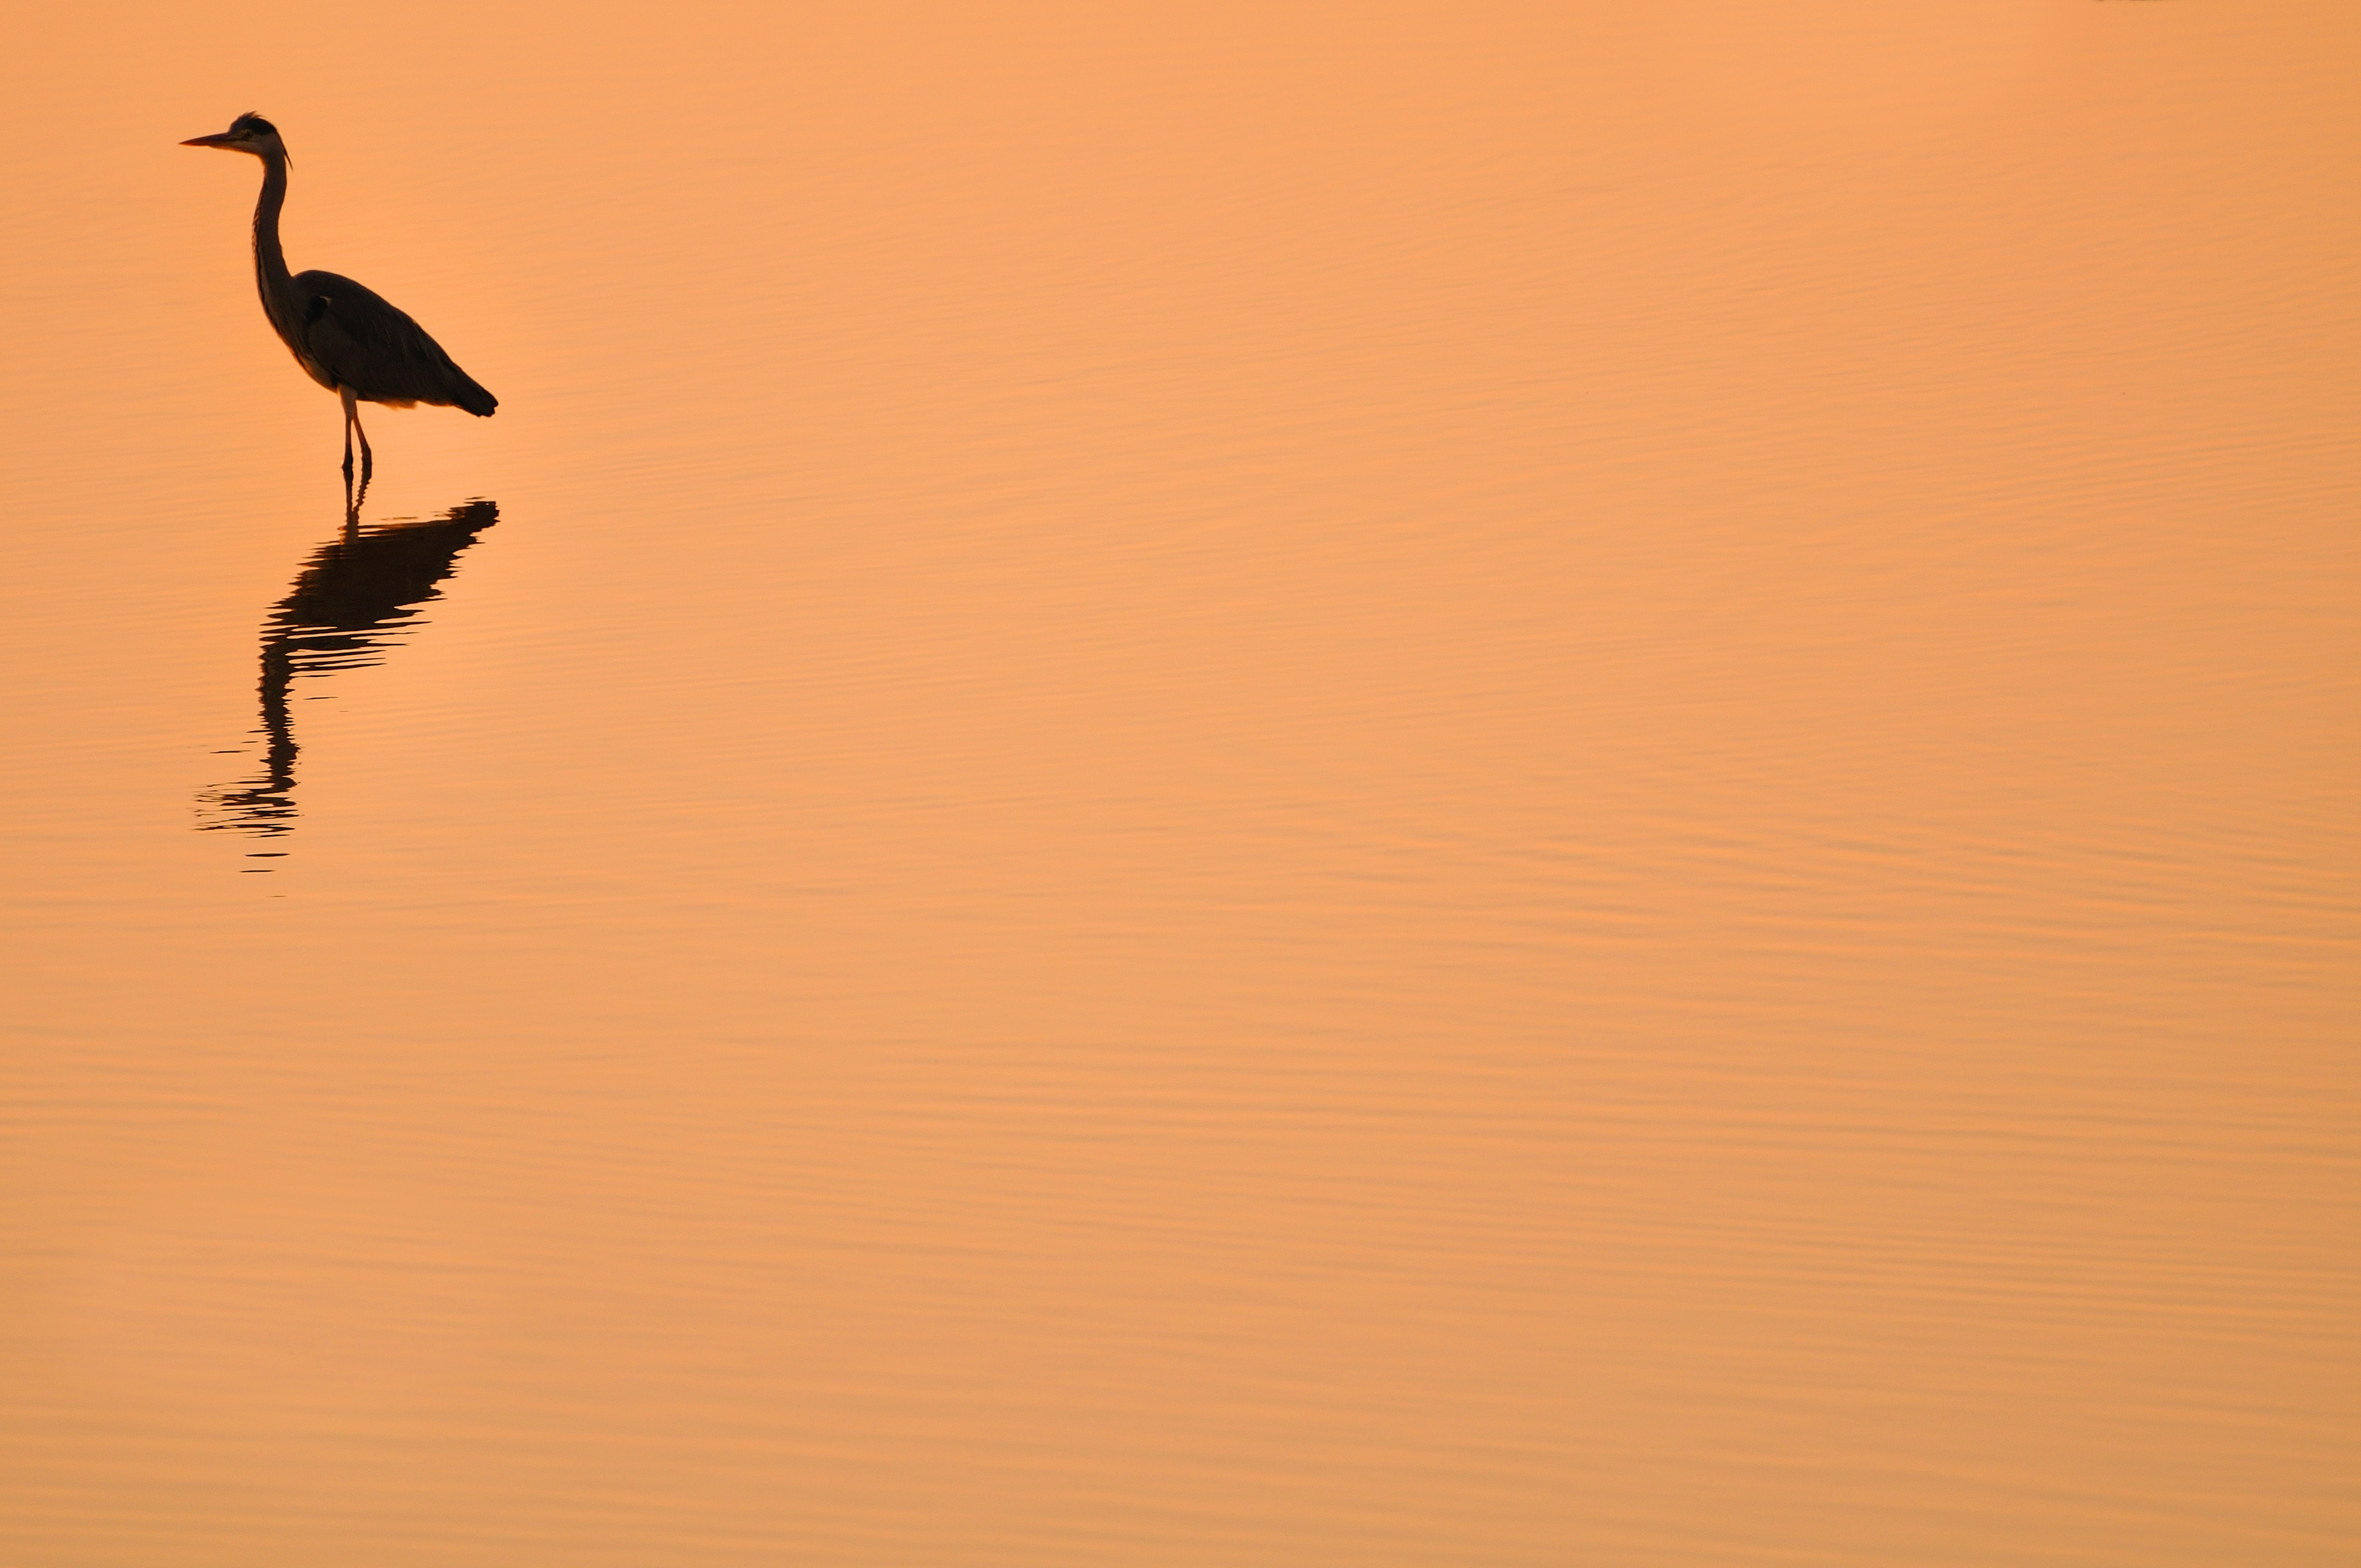 silhouette of heron with orange background